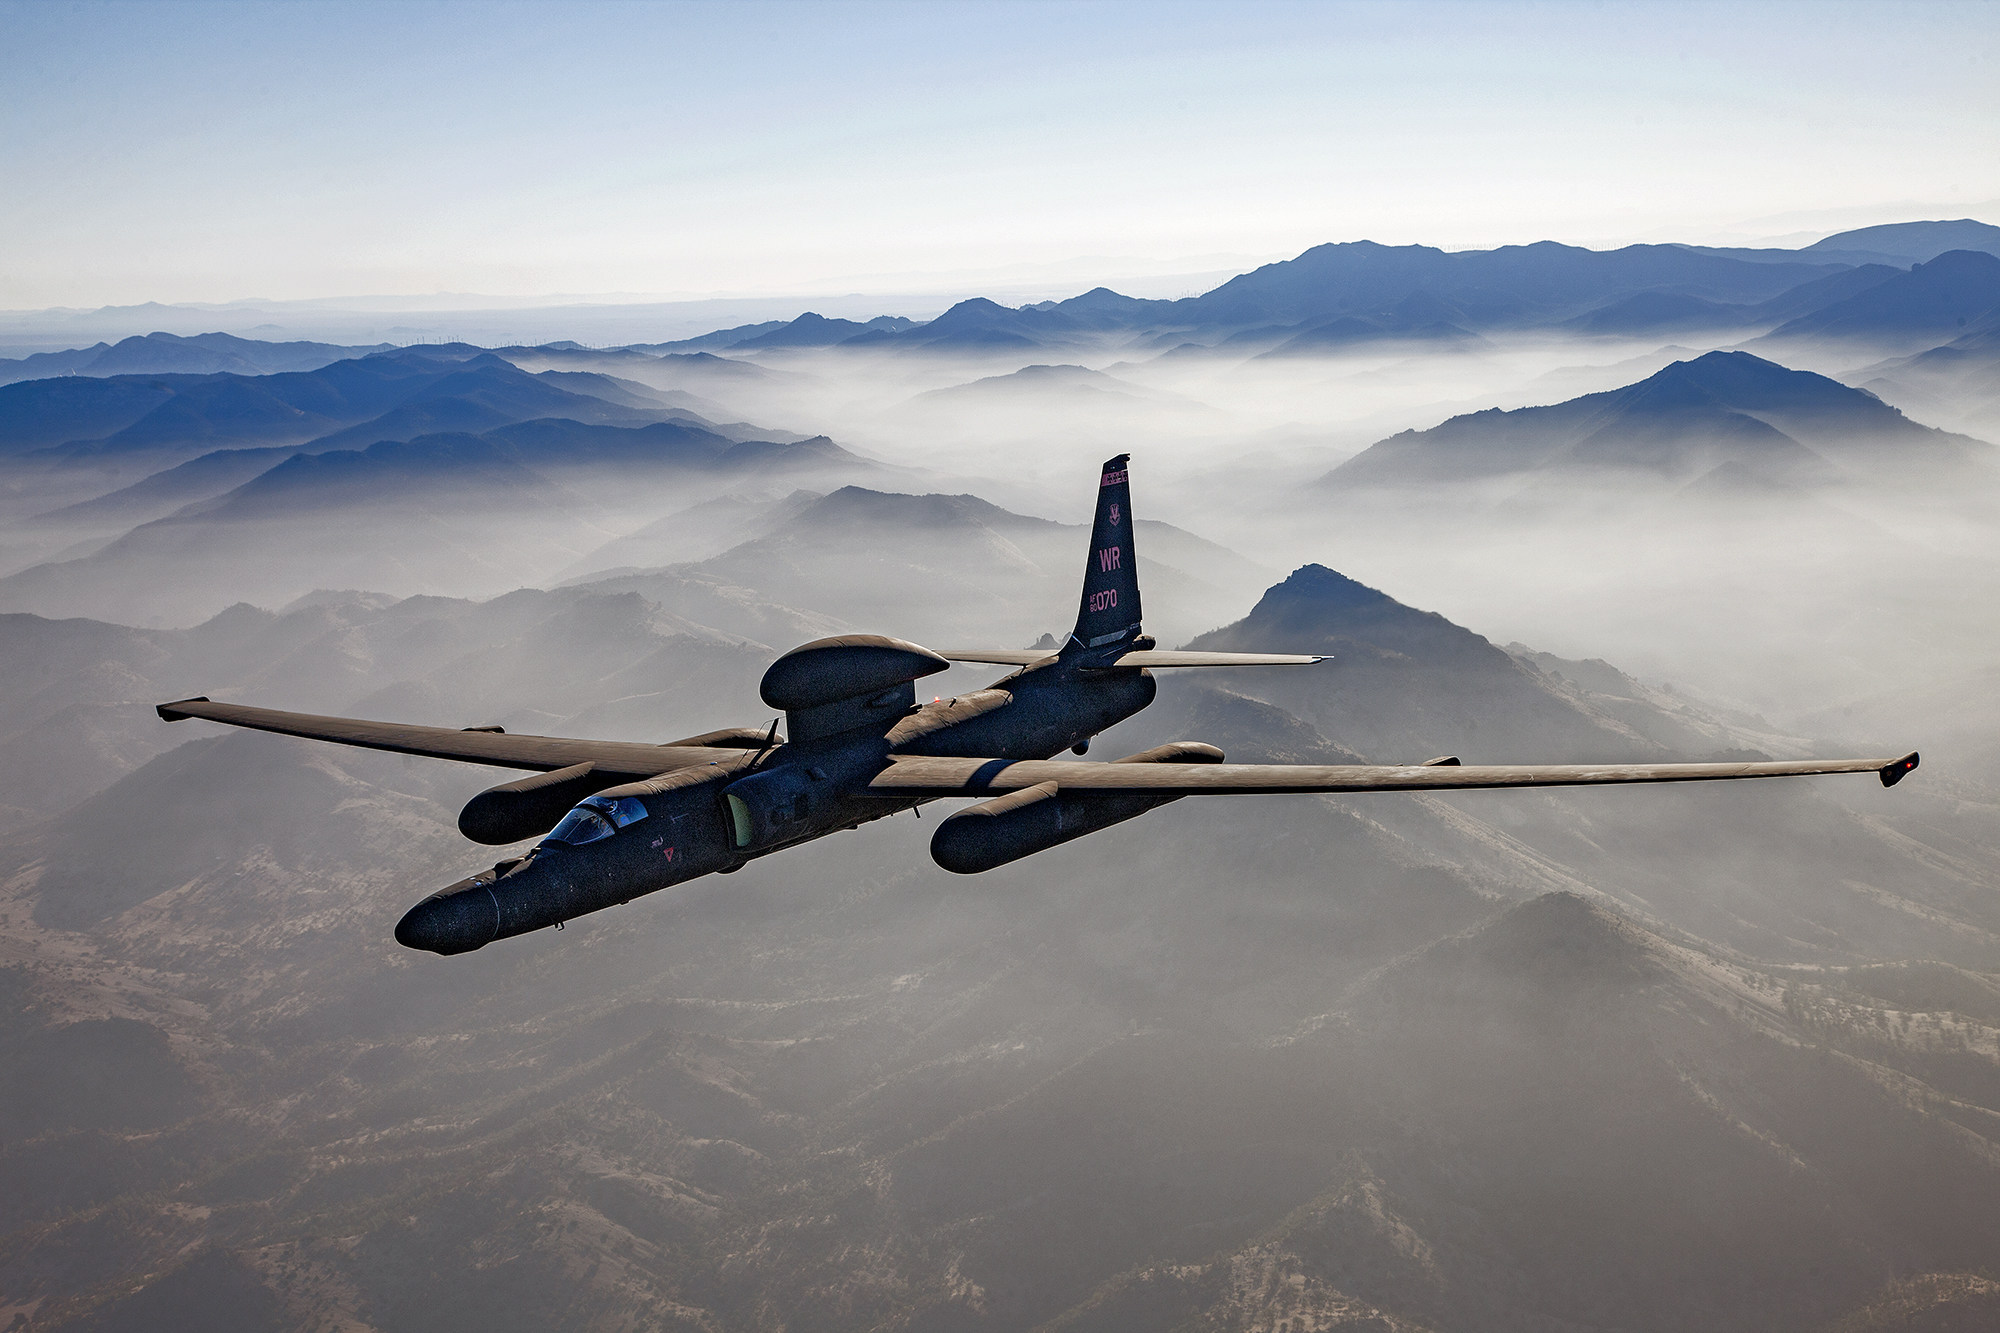 Lockheed U-2 Reconnaissance Aircraft with AI Kubernetes Upgrade Makes Flight